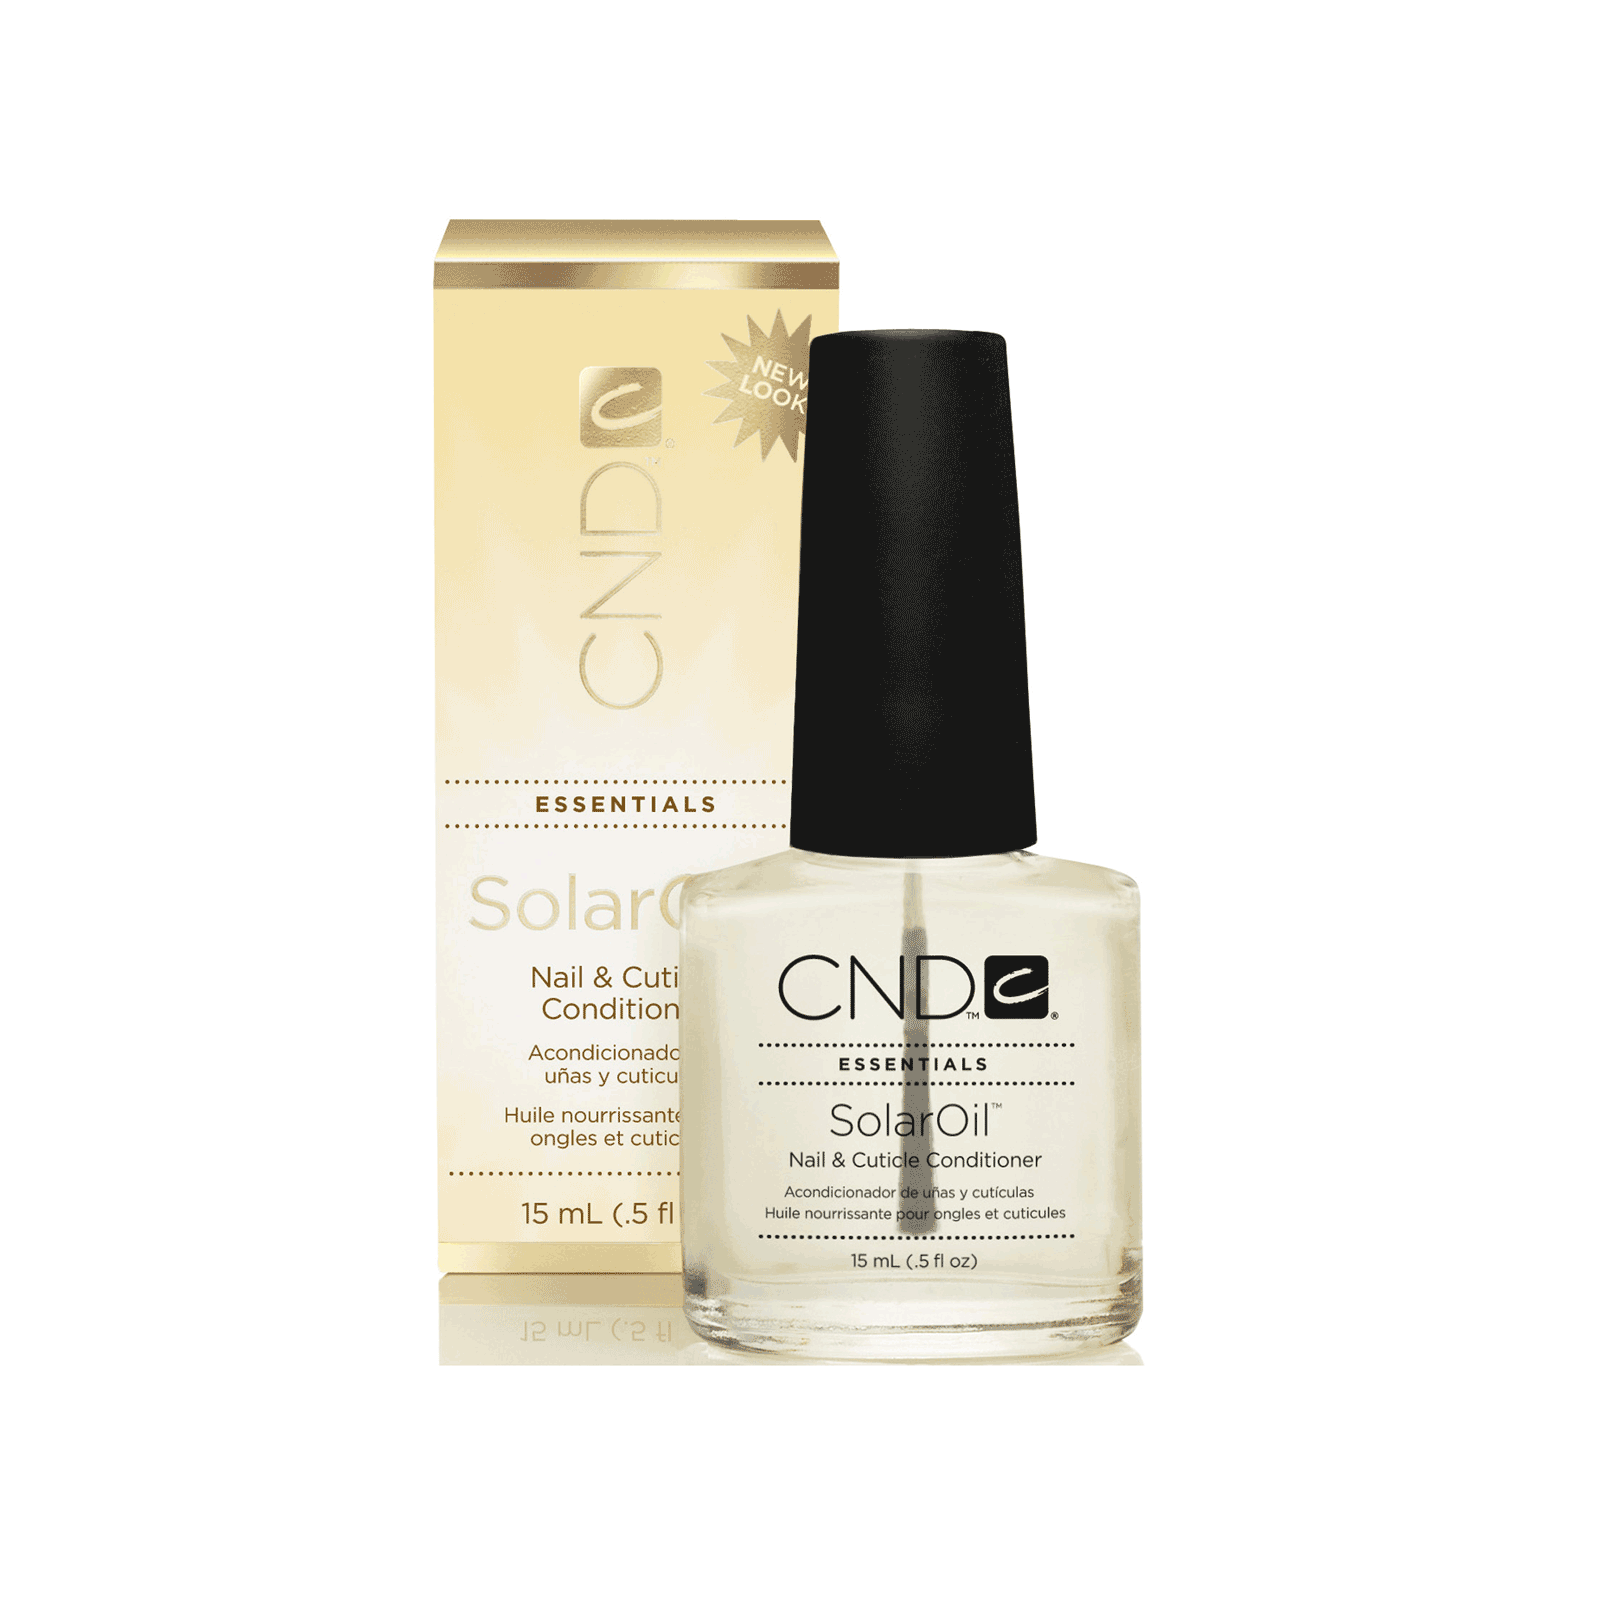 Solar Oil Nail & Cuticle Treatment - CND | CosmoProf